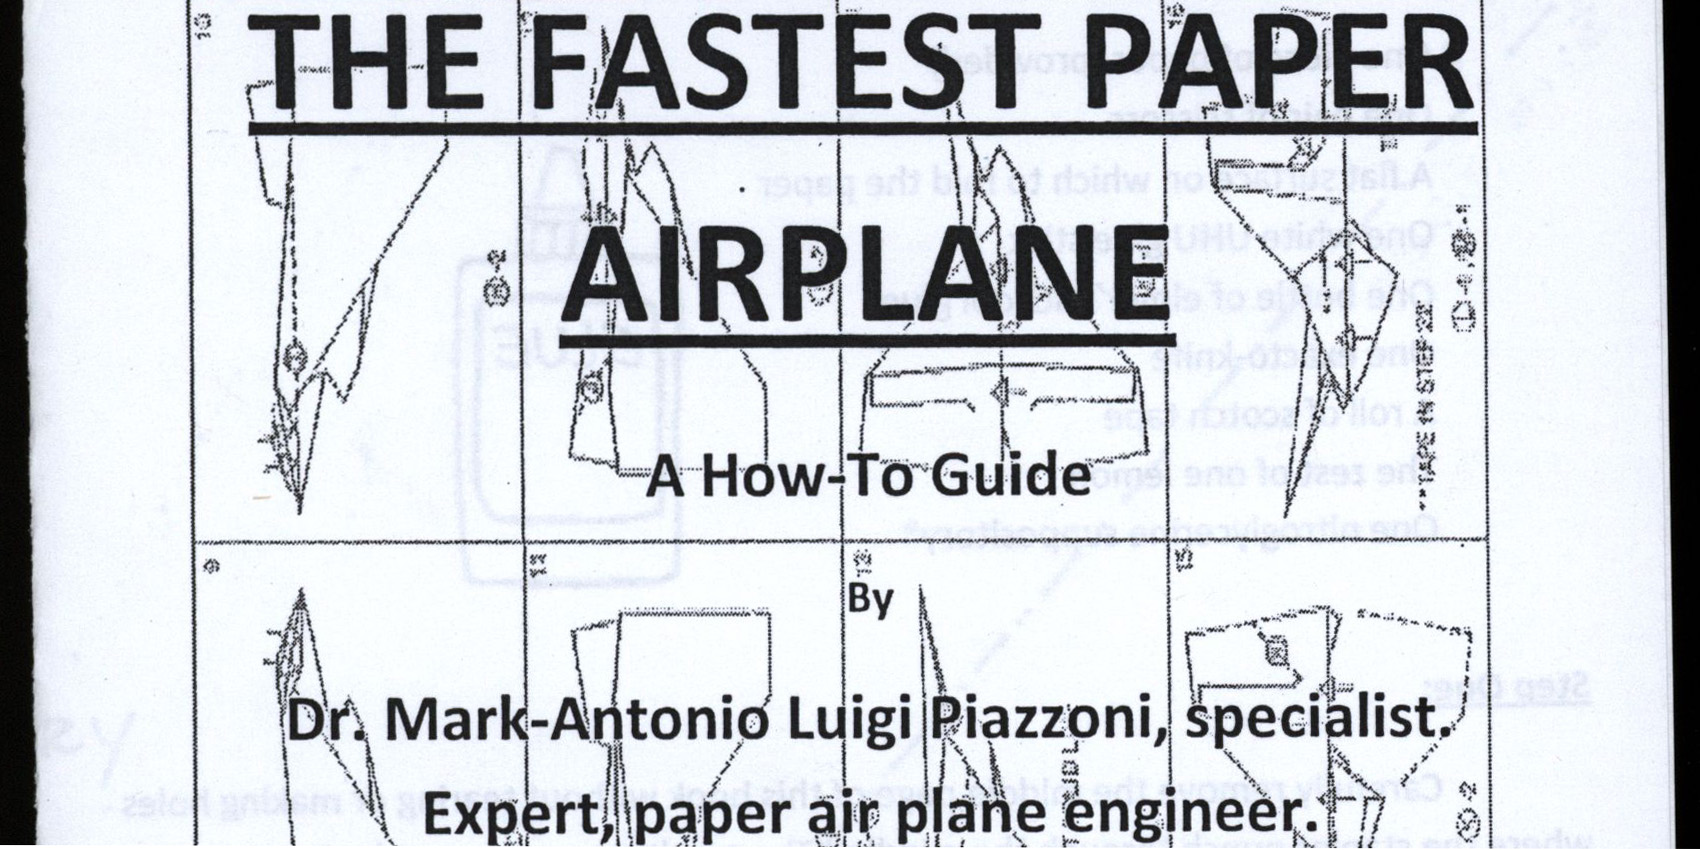 The Fastest Paper Airplane: A How-To Guide